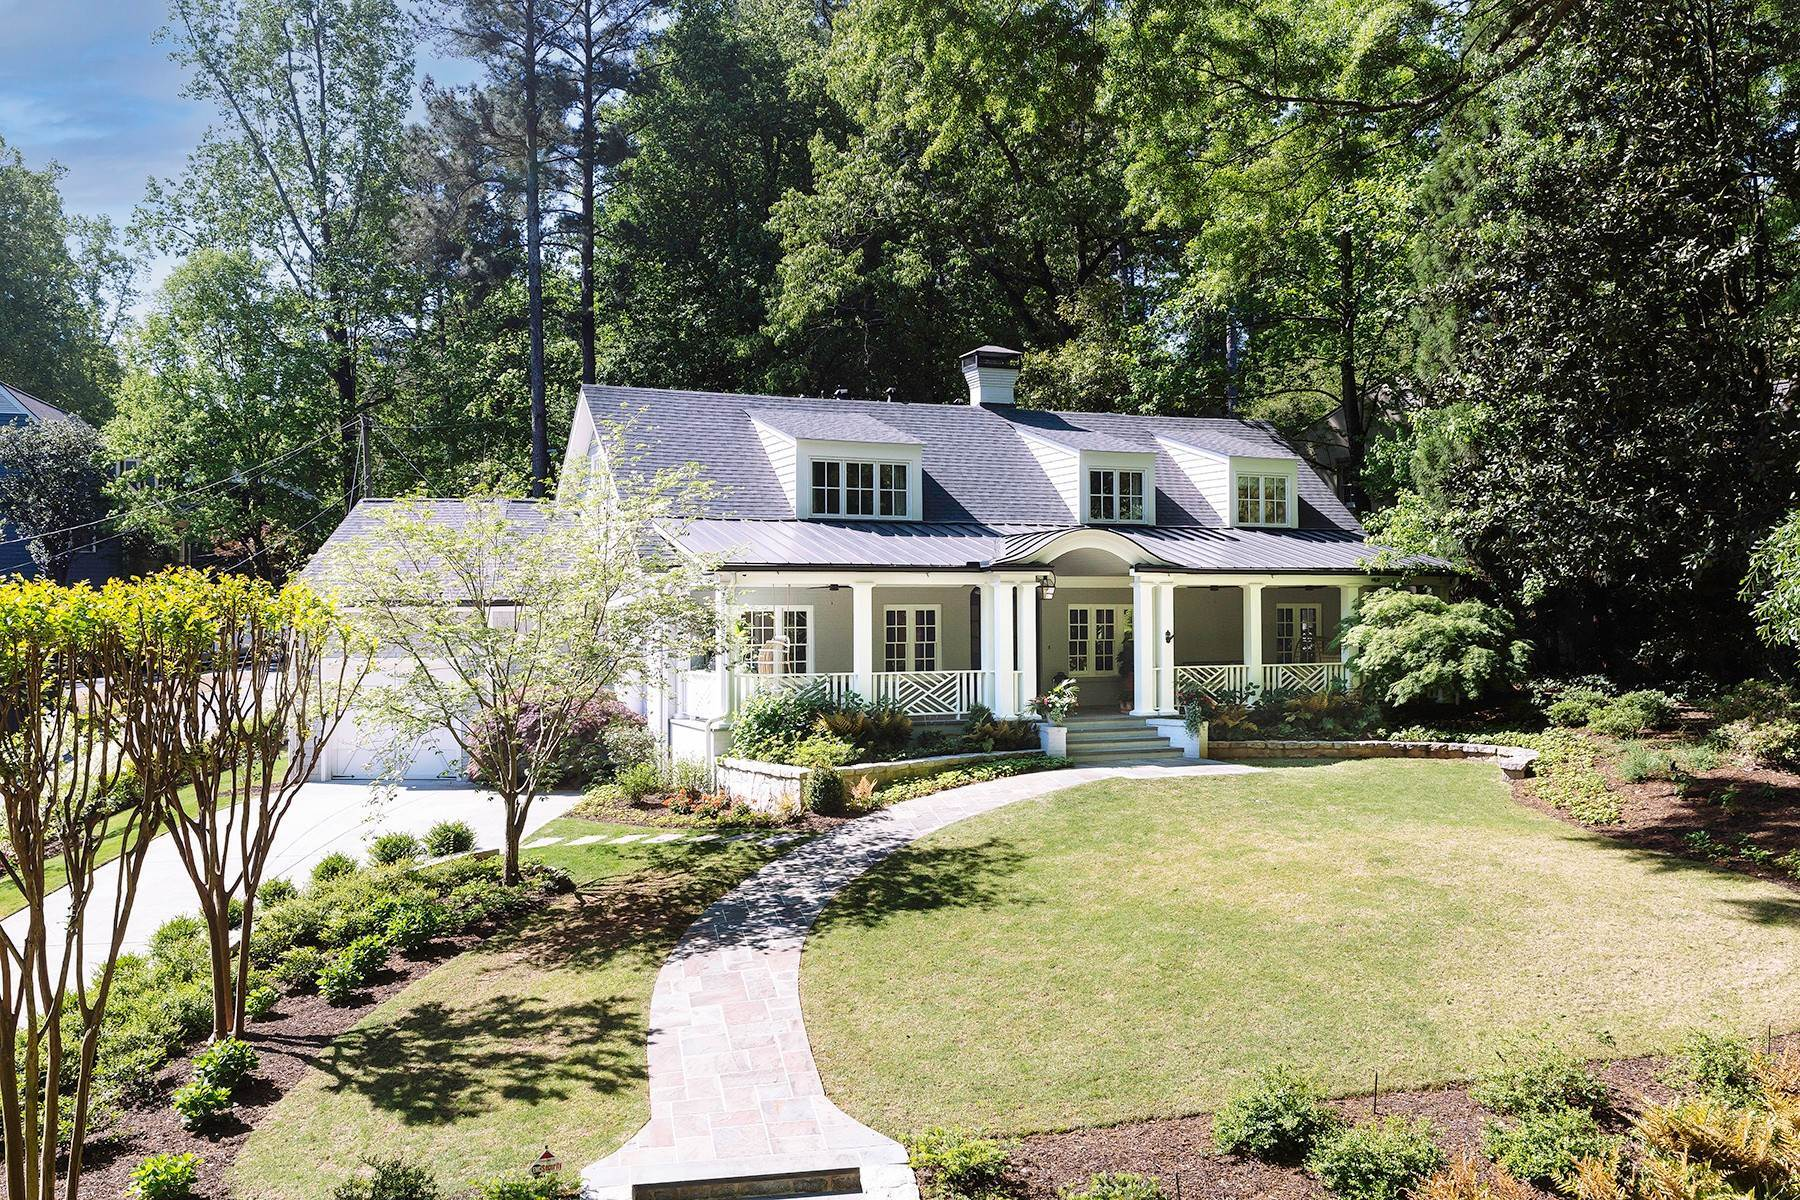 Single Family Homes for Sale at Absolutely Stunning To-The-Studs Renovation 2095 Springlake Drive Atlanta, Georgia 30305 United States